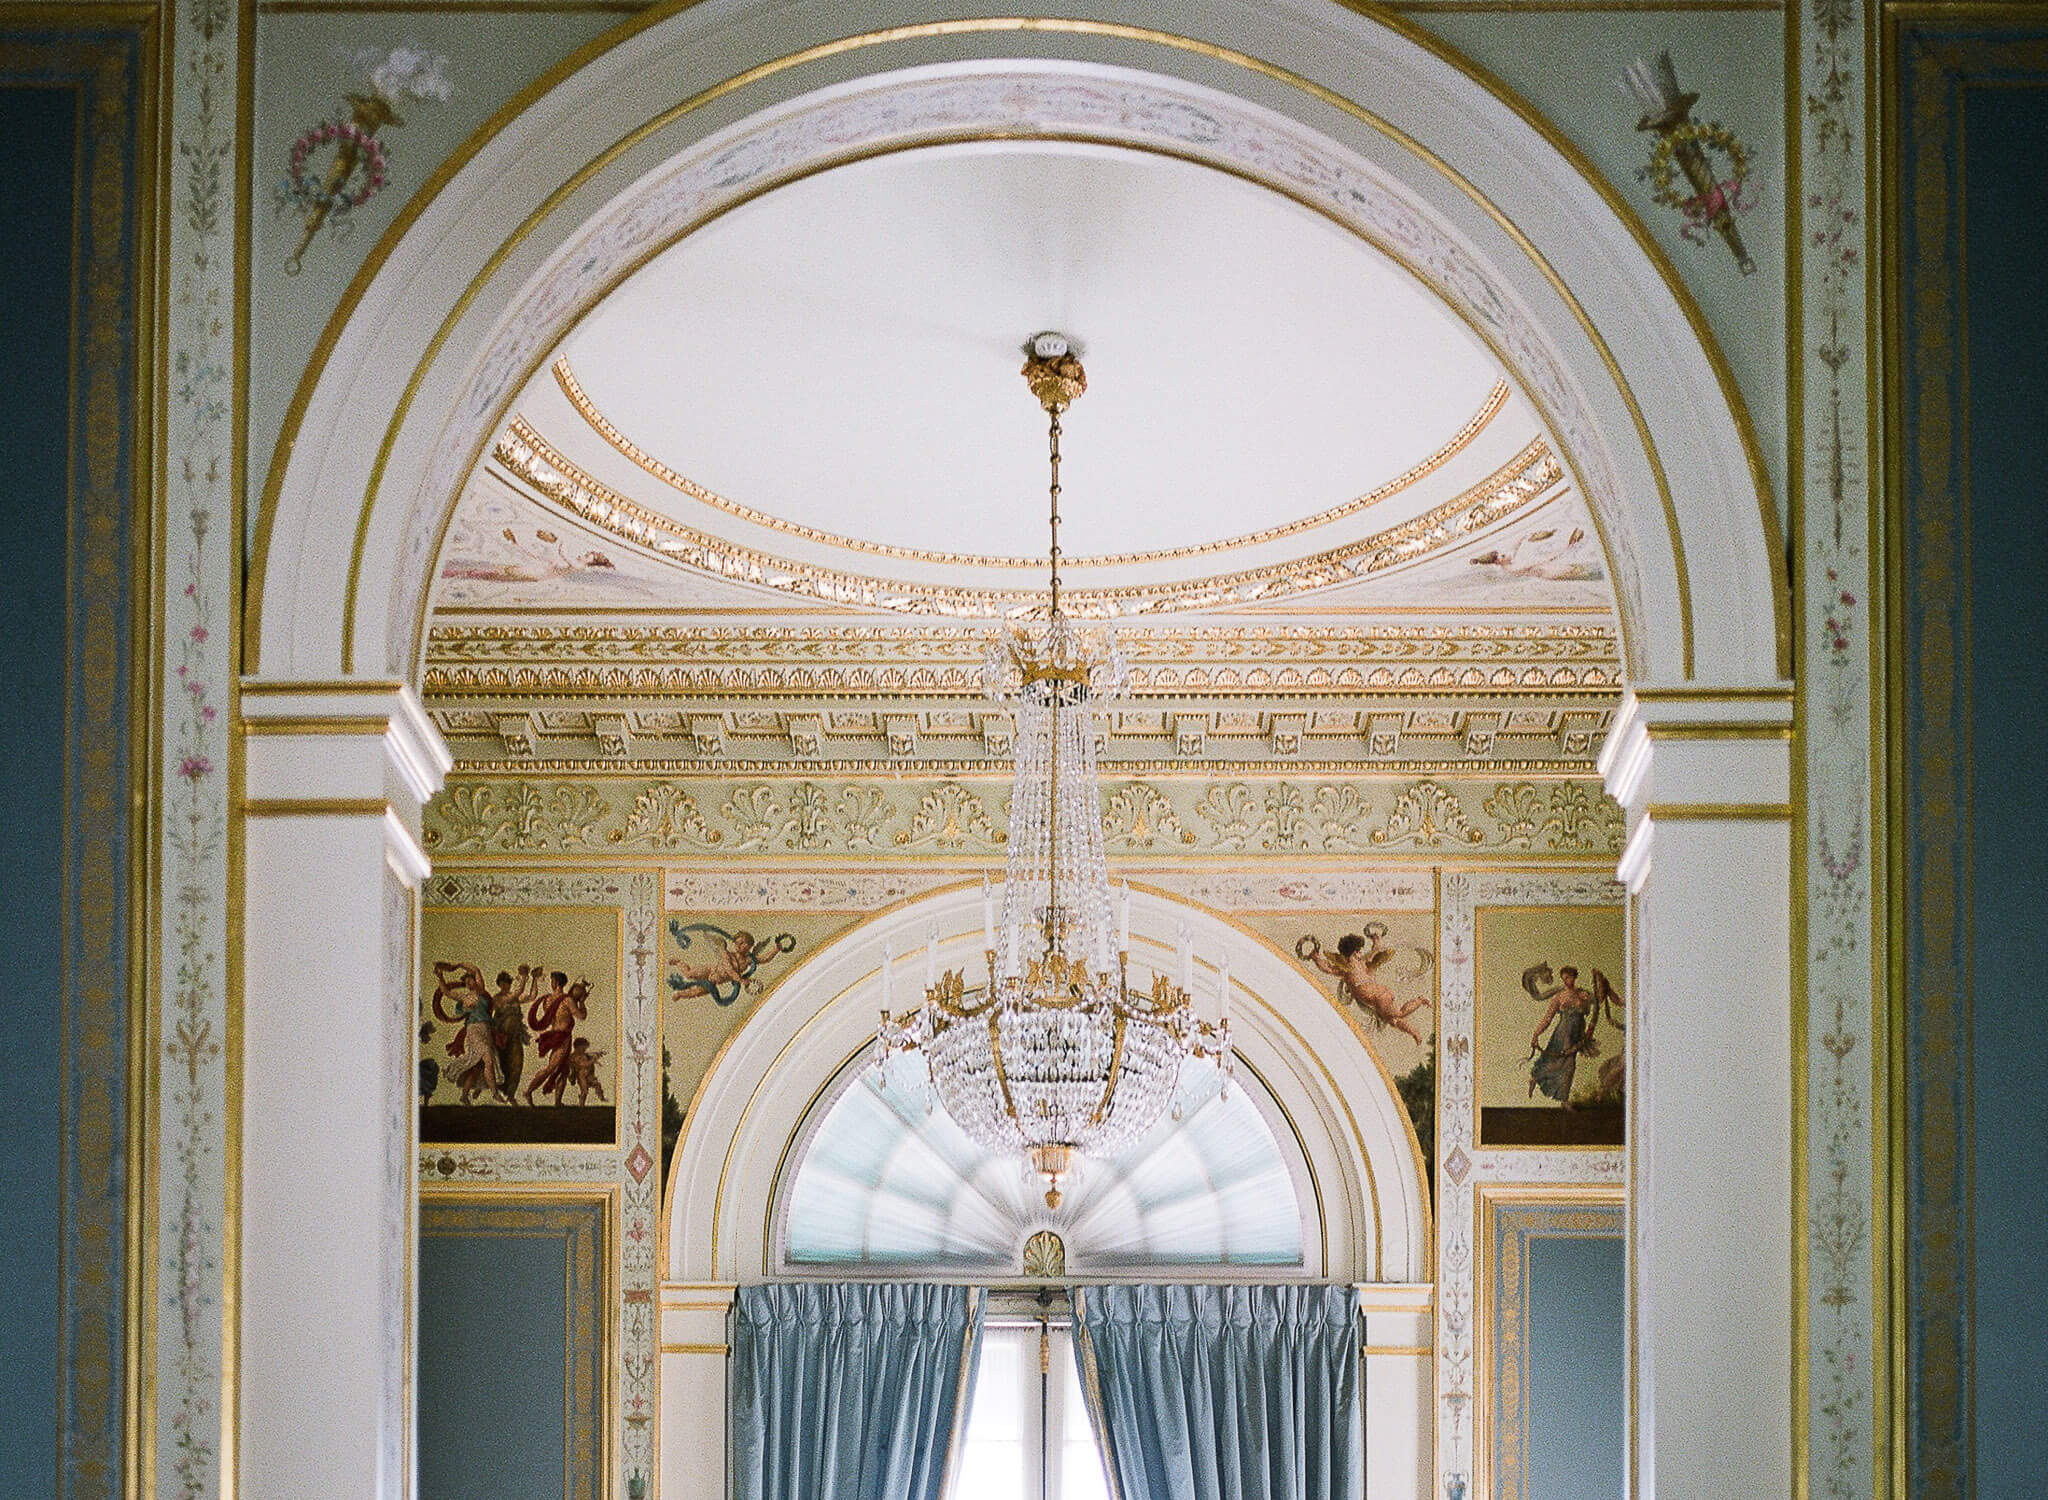 Beautiful Paris Palace interior decorative details by Portugal Wedding Photographer